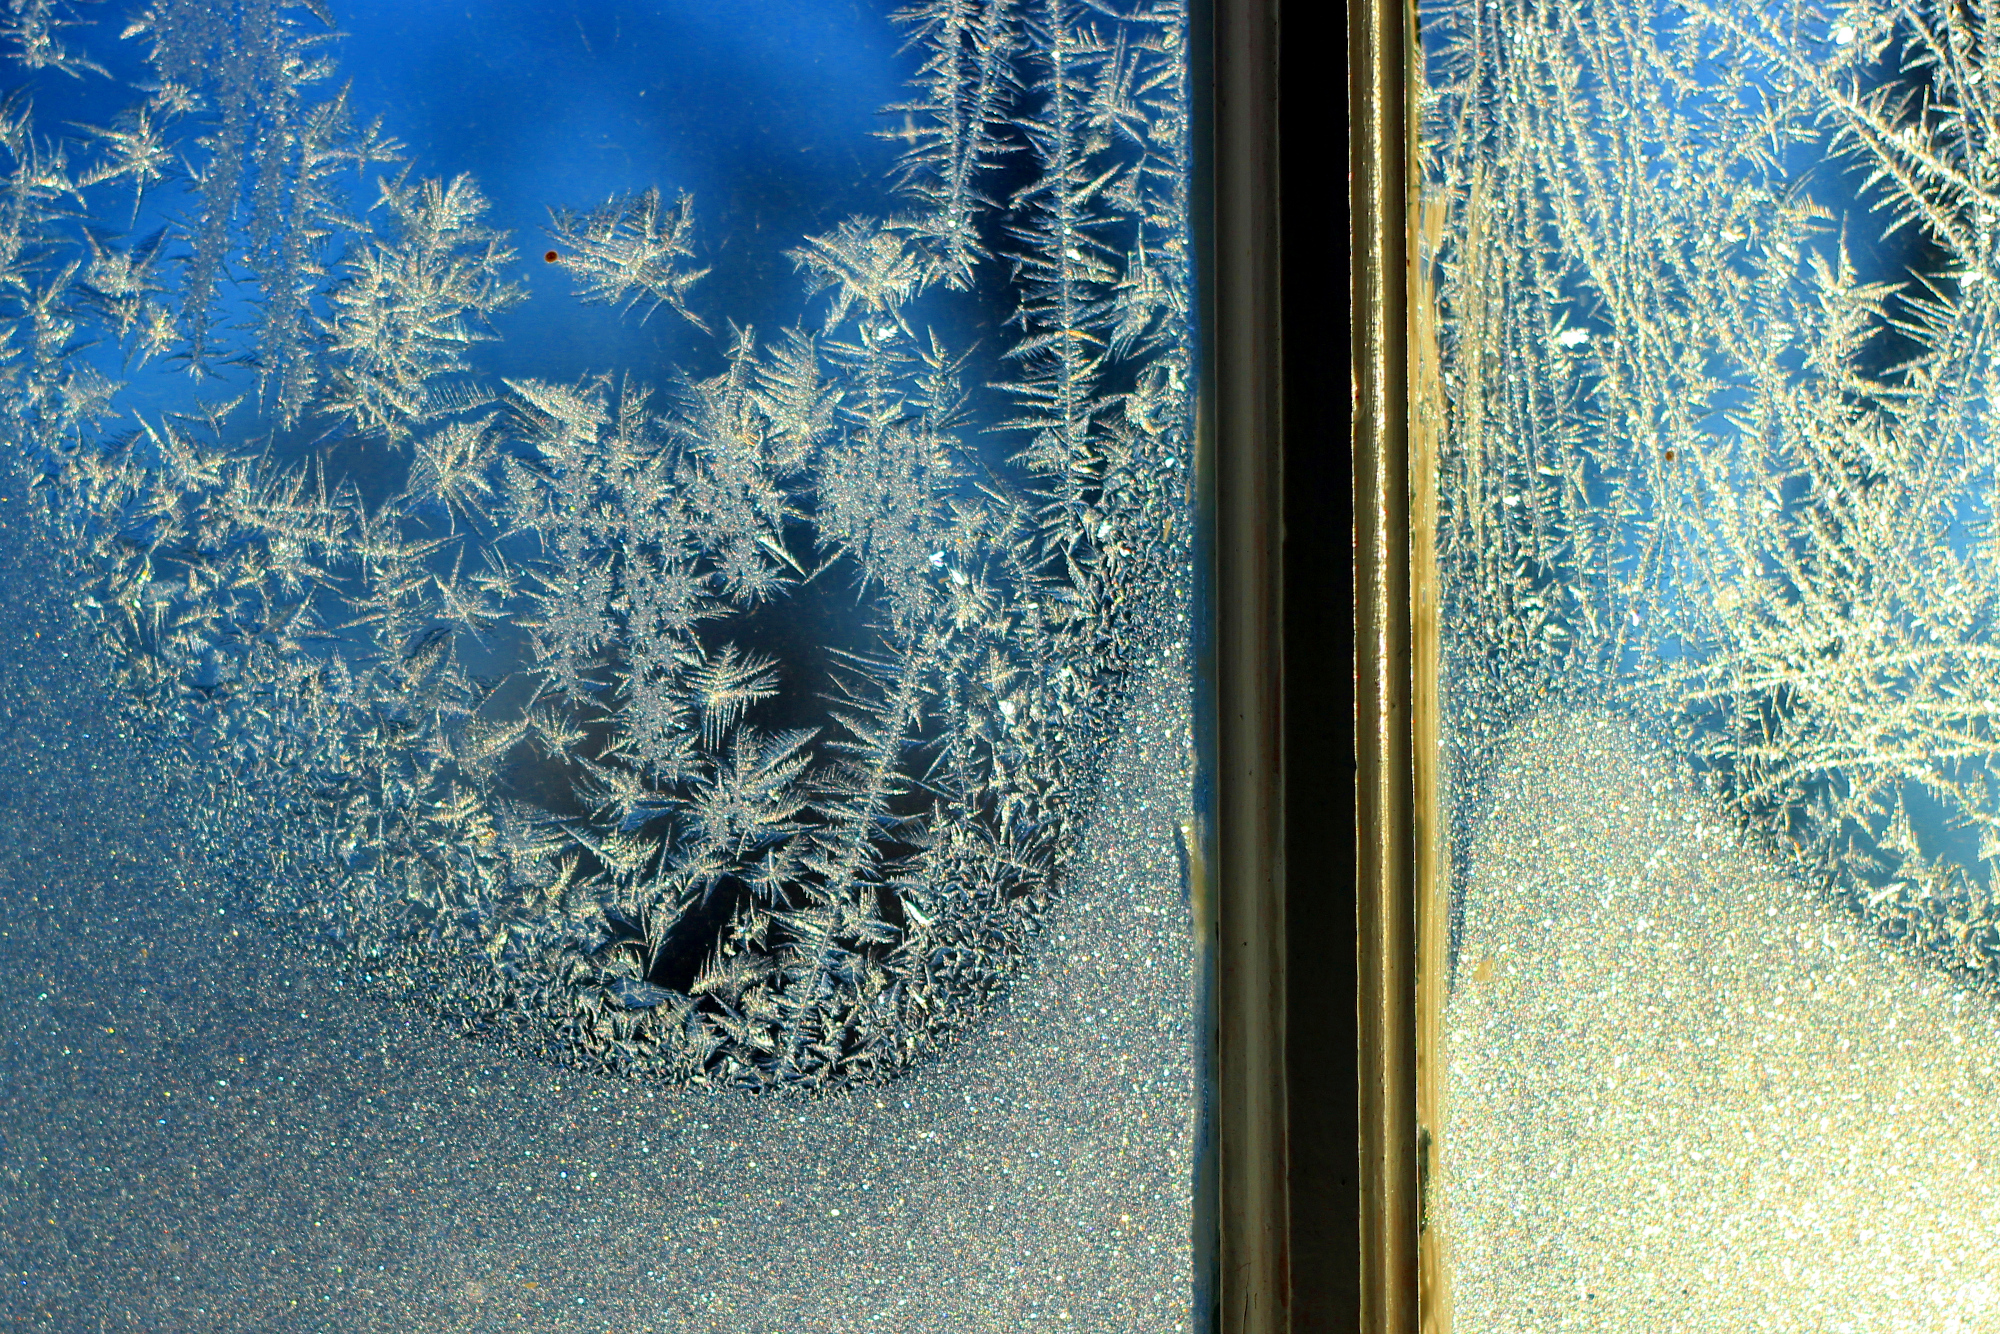 Frosty porch window